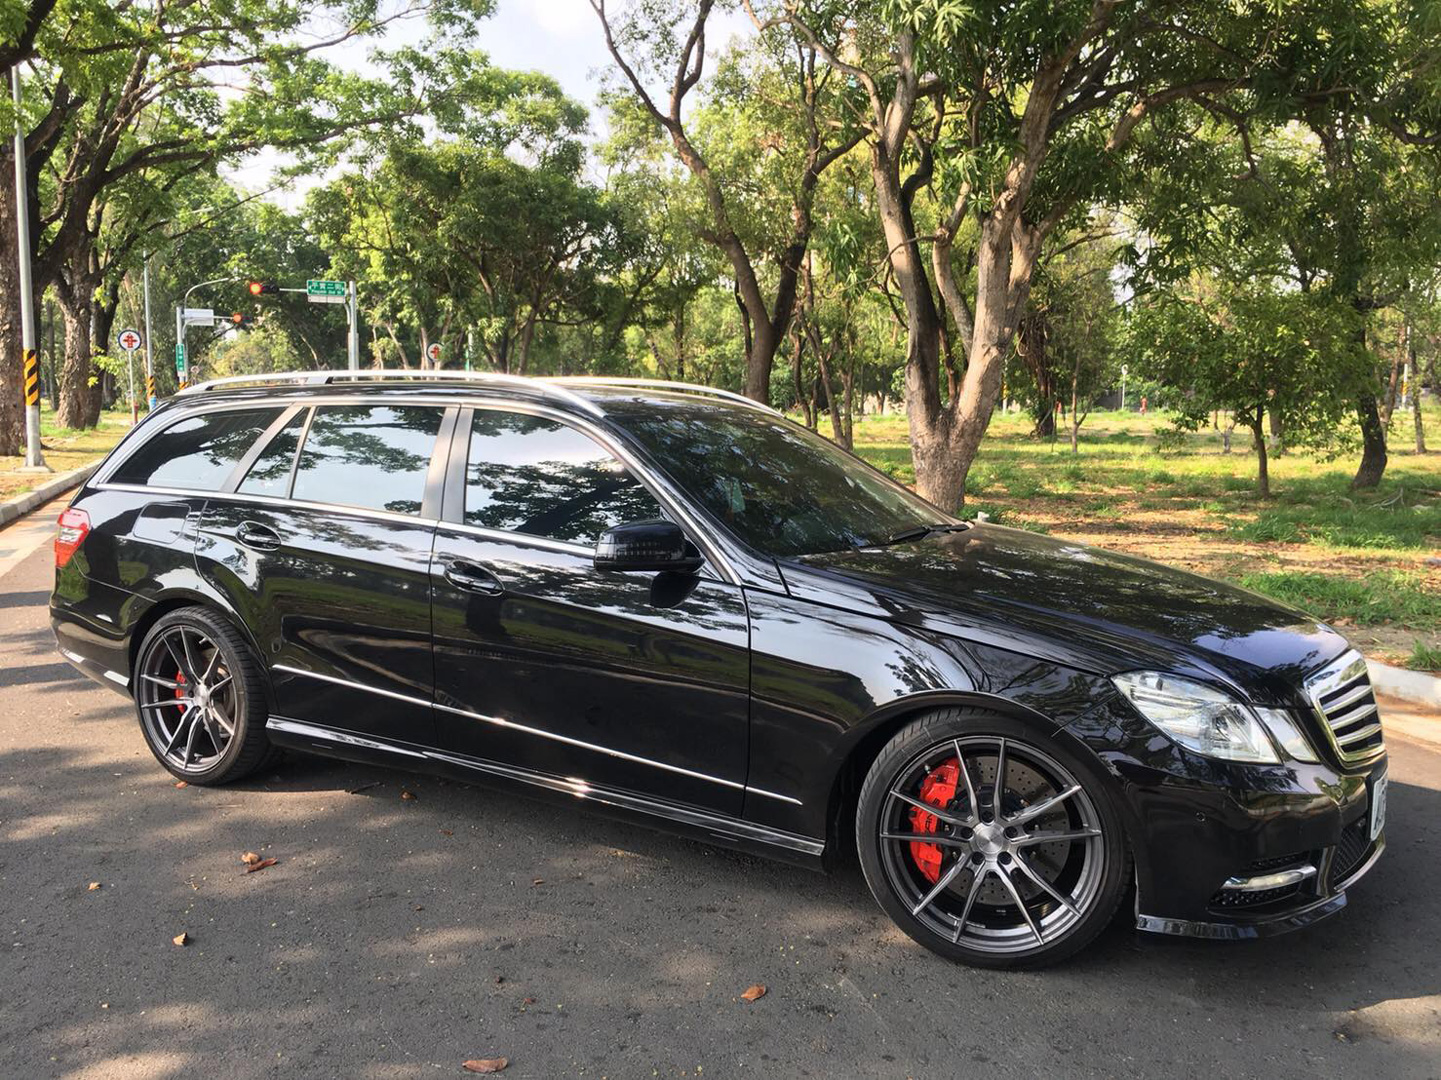 mercedes-e-class-rims-varro-wheels-vd18x-spin-forged-titanium-19-inch-staggered